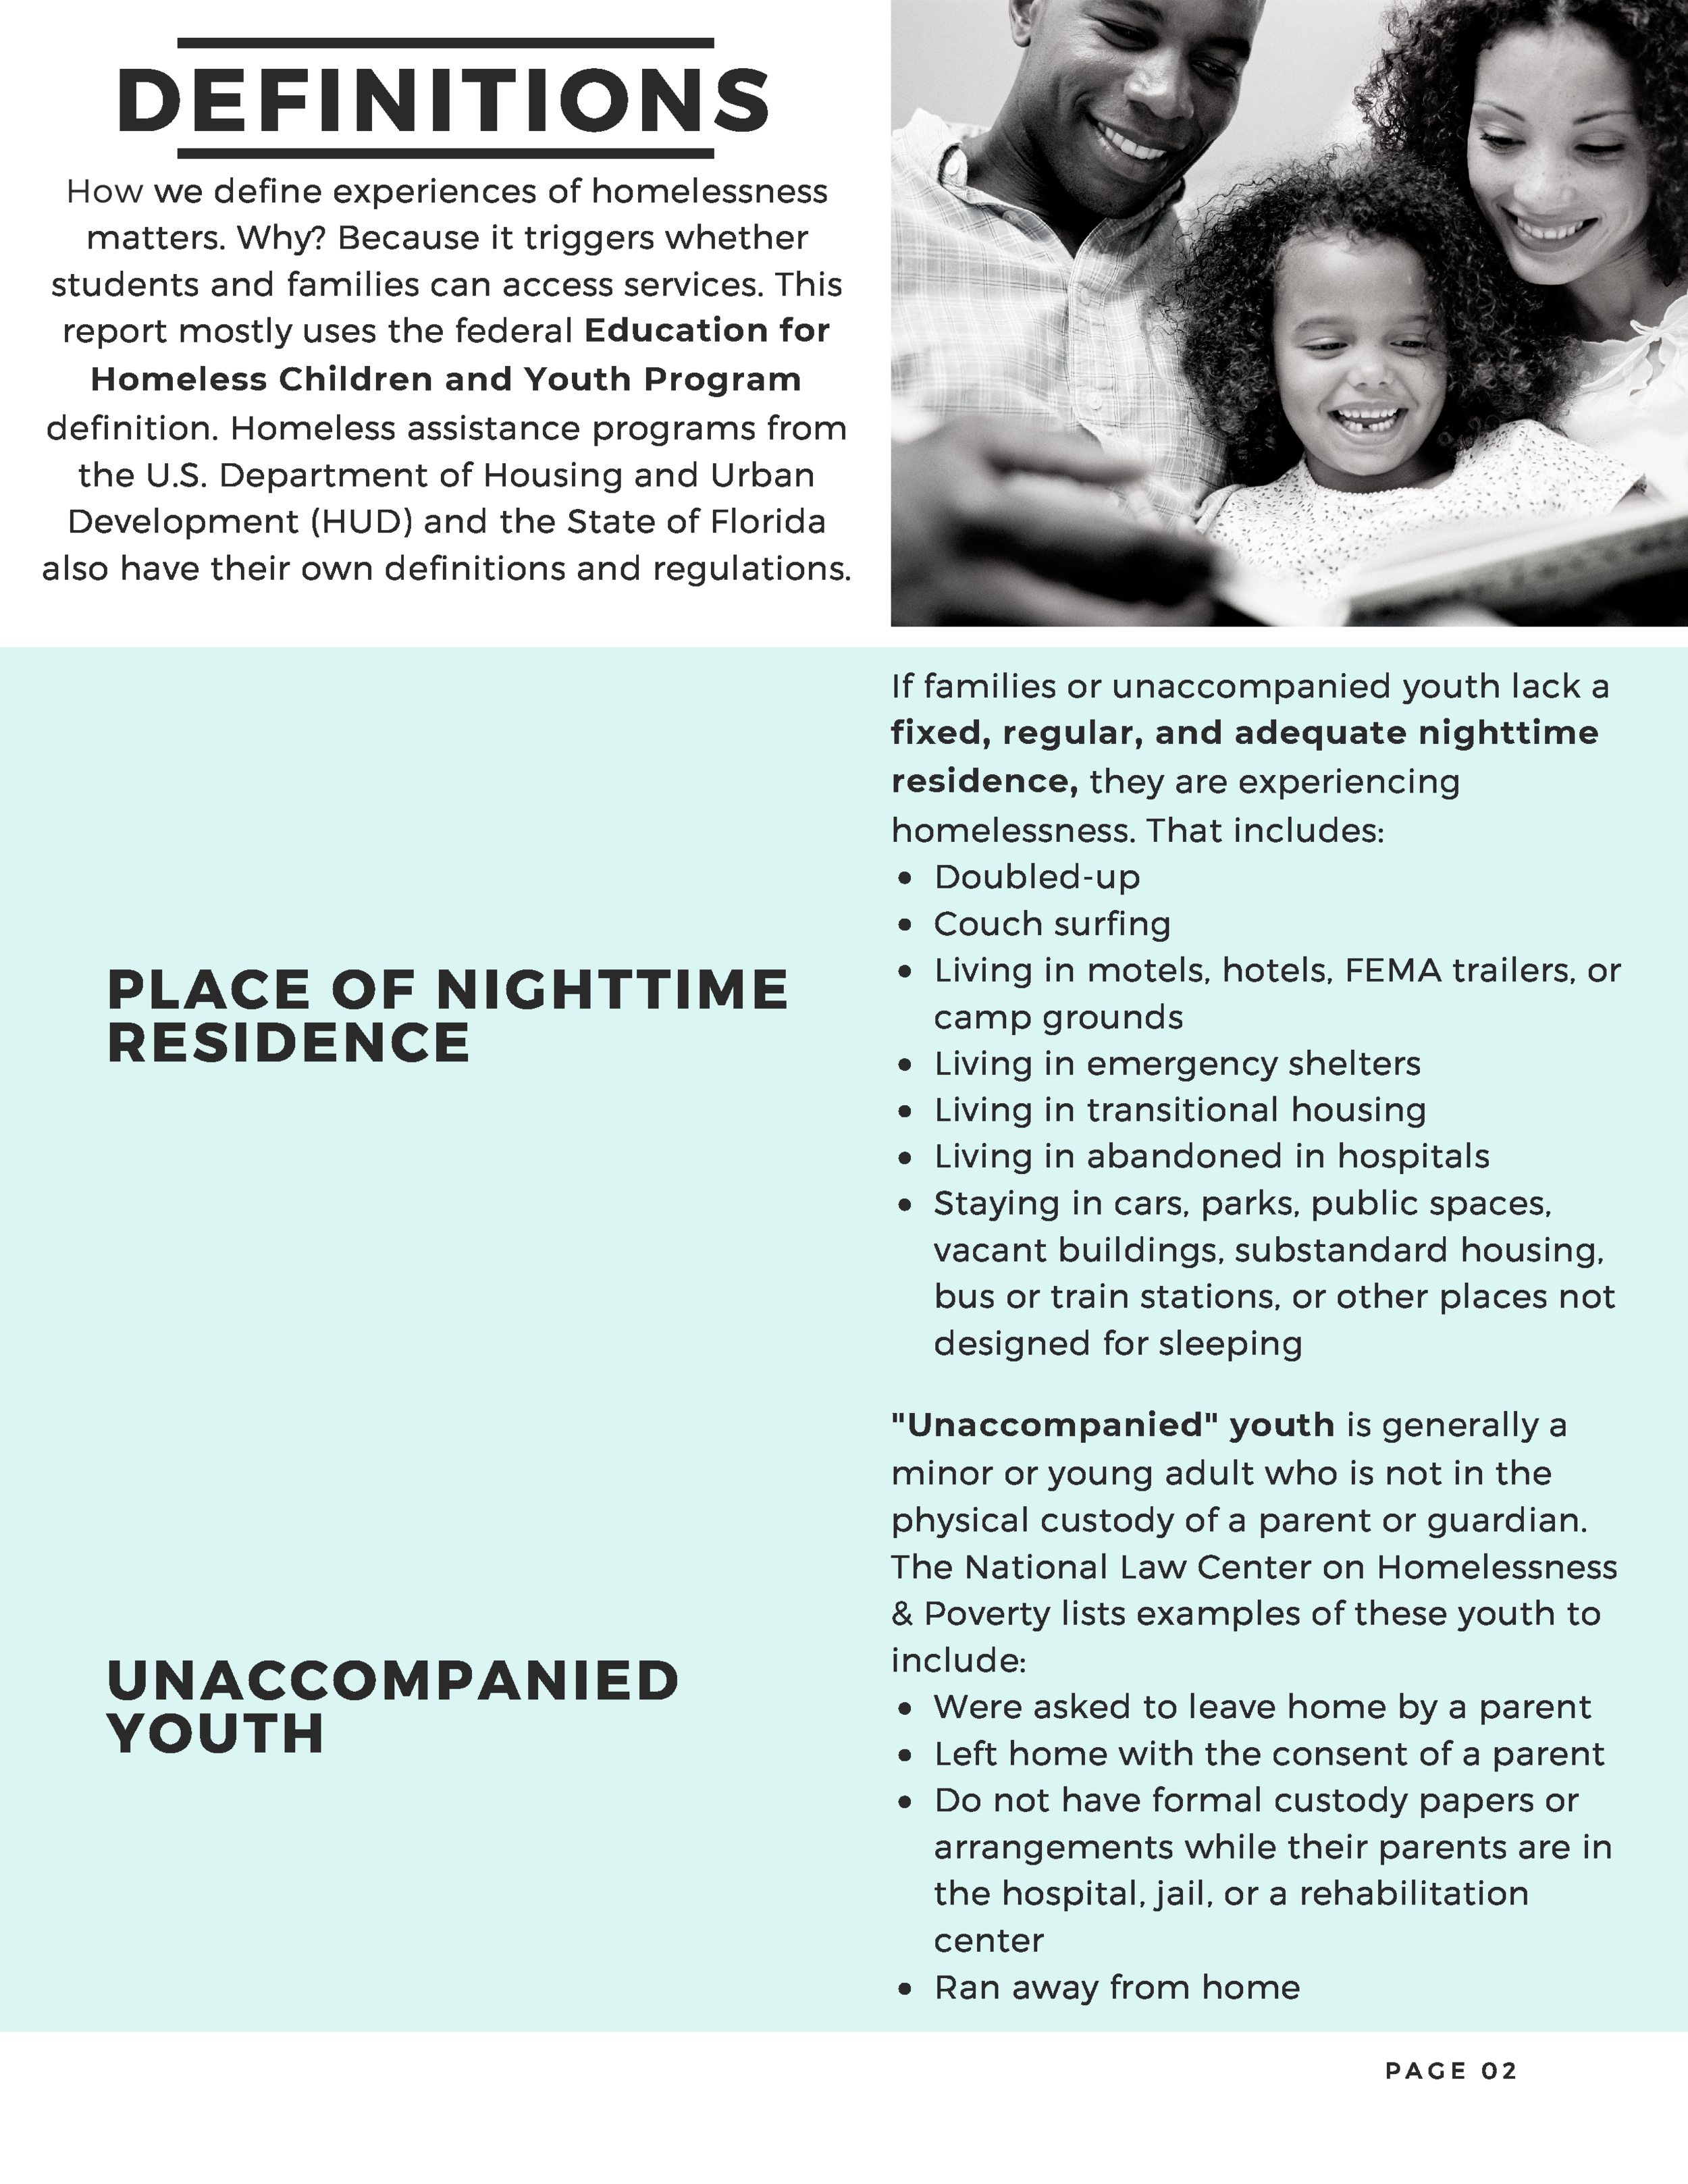 Students Experiencing Homelessness in Florida - Updates and Solutions - August 2019-3.png